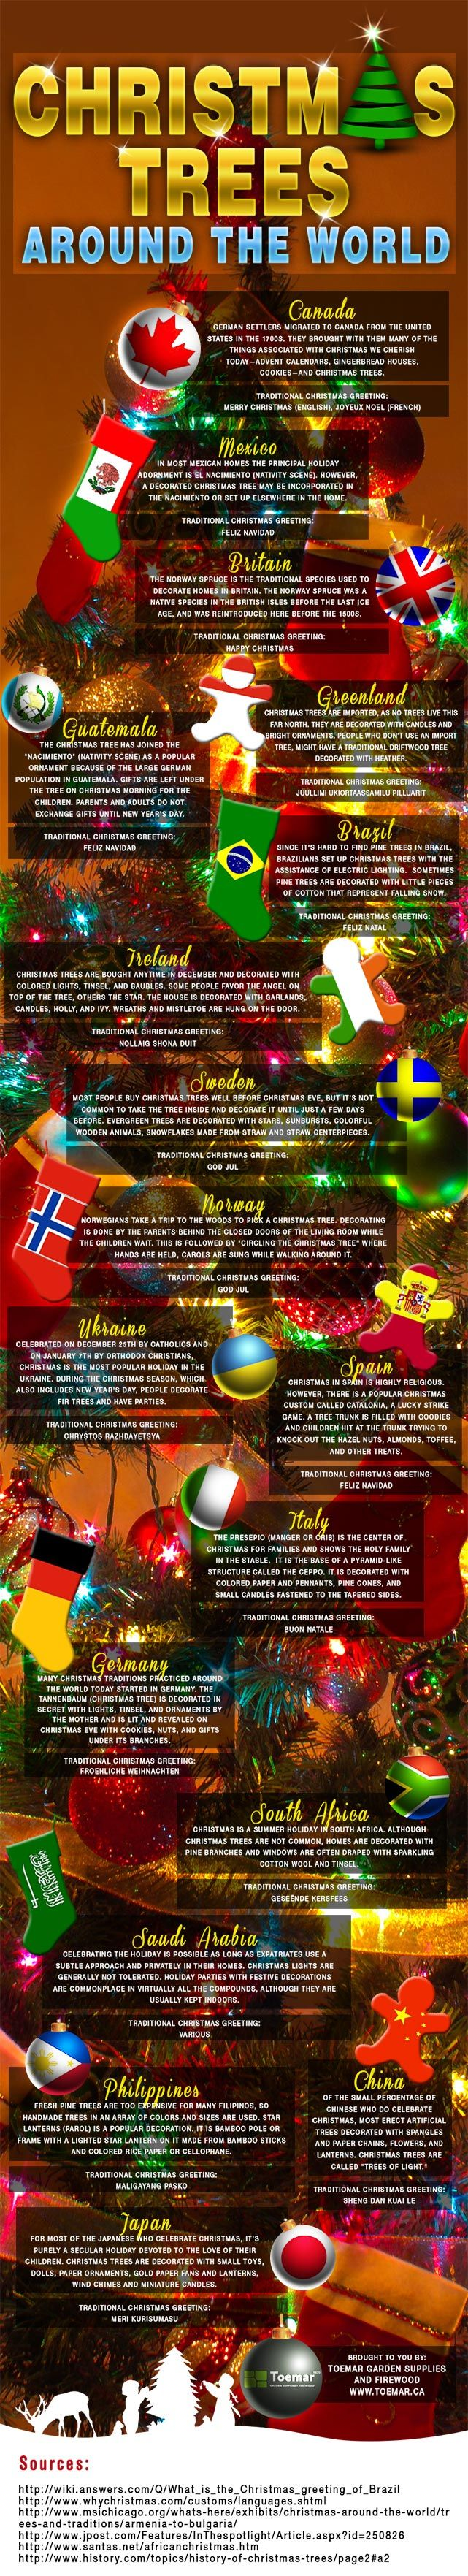 Here is some interesting knowledge on Christmas Trees used around the world. Check this infographic out that is simple to read, informative and entertaining.